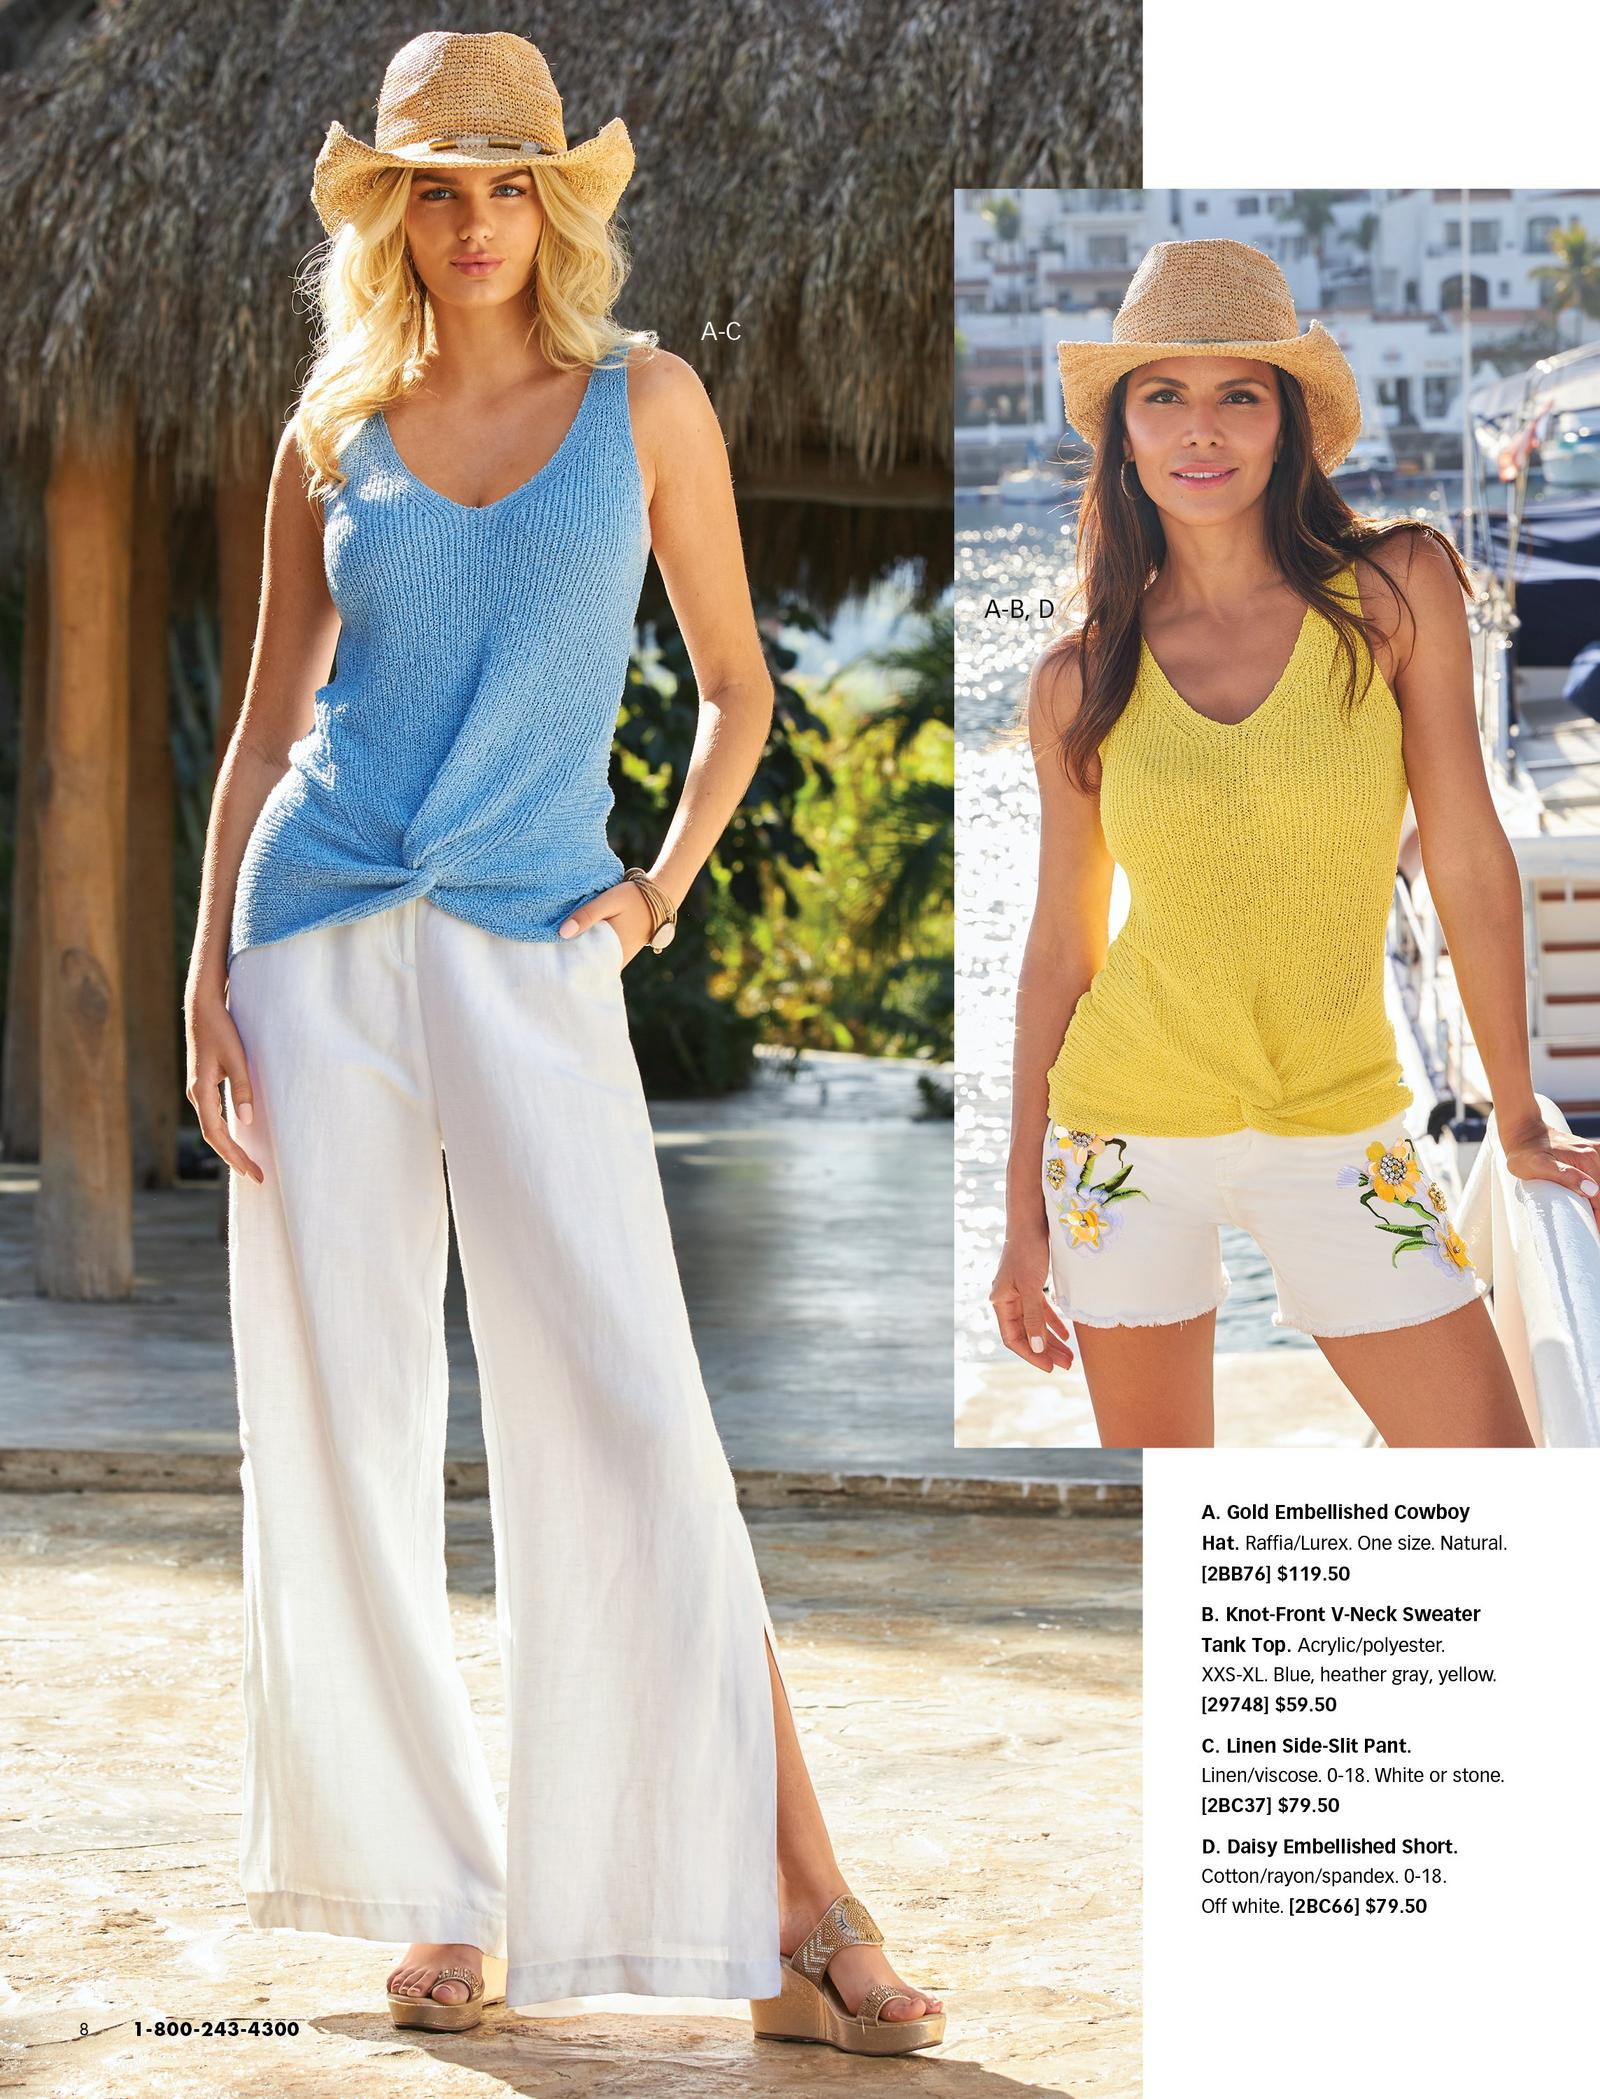 left model wearing a light blue twist-front sleeveless sweater, white side-slit linen pants, gold embellished cowboy hat, and gold wedges. right model wearing a white twist-front sleeveless sweater, yellow daisy embellished white jean shorts, and gold embellished cowboy hat.